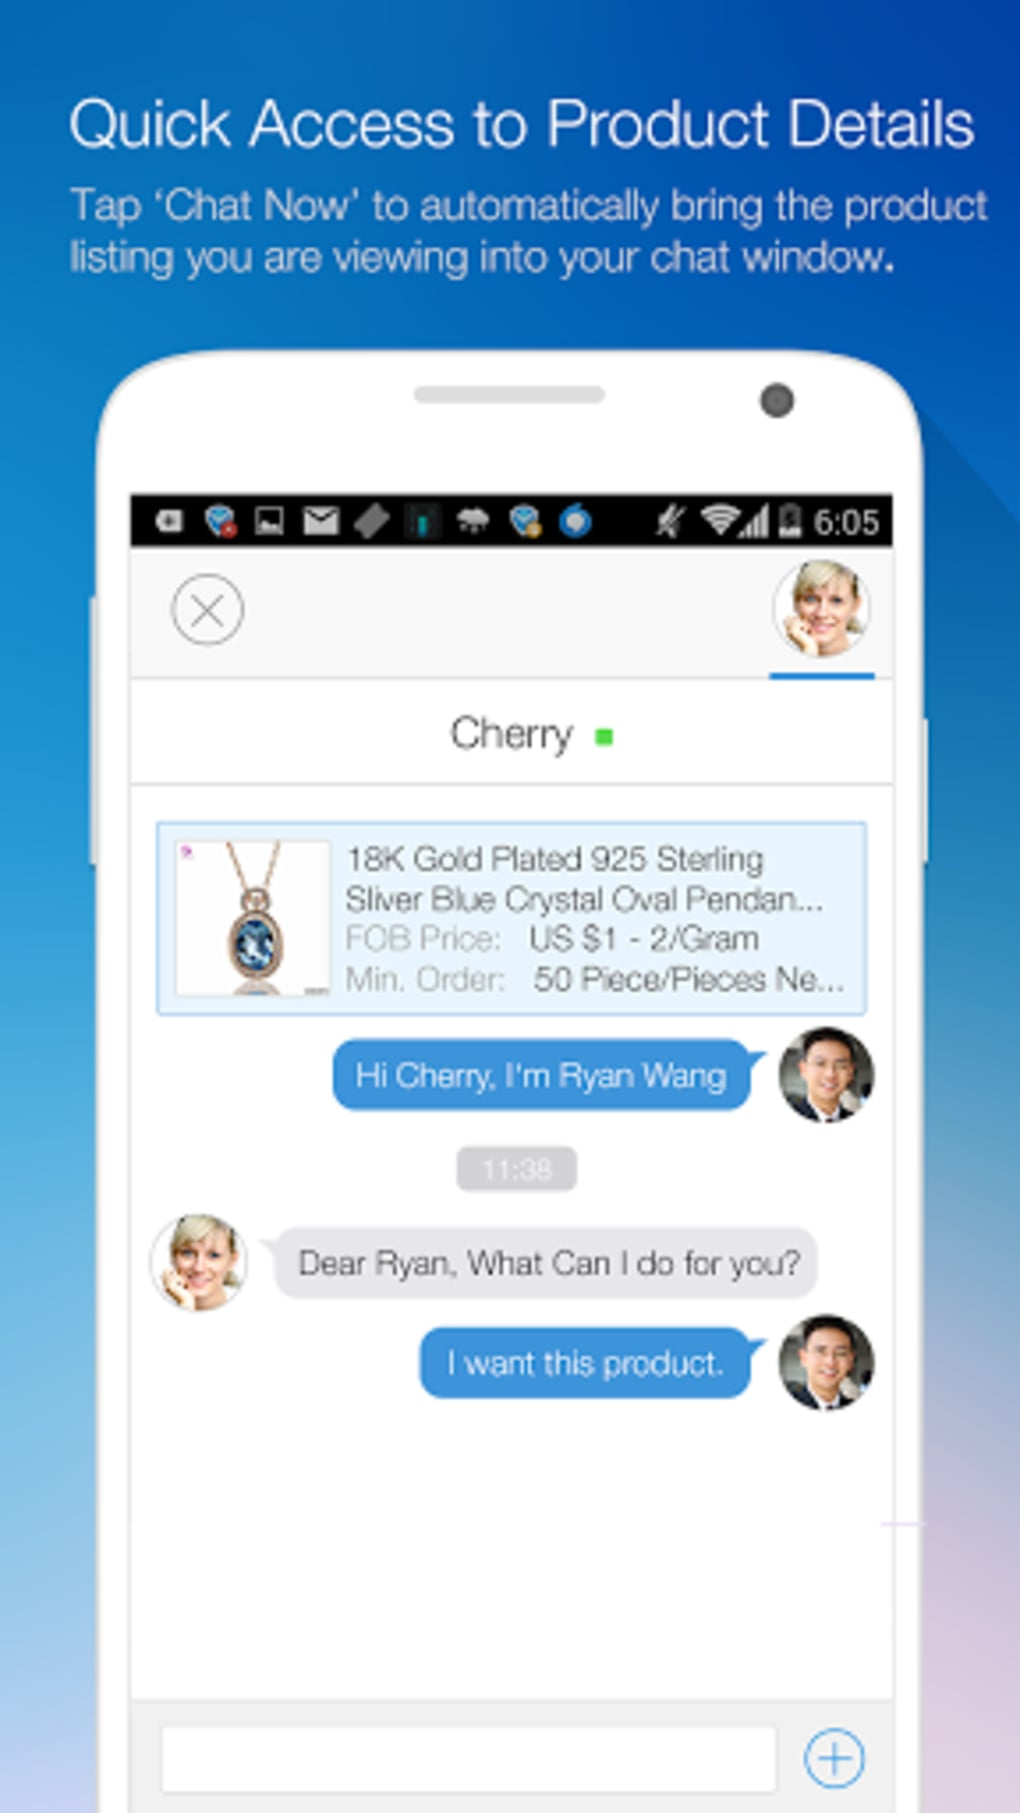 Alibaba Com Apk For Android Download Download alibaba business apk for android, apk file named com.alibababusiness and app developer company is mina habib. alibaba com apk for android download